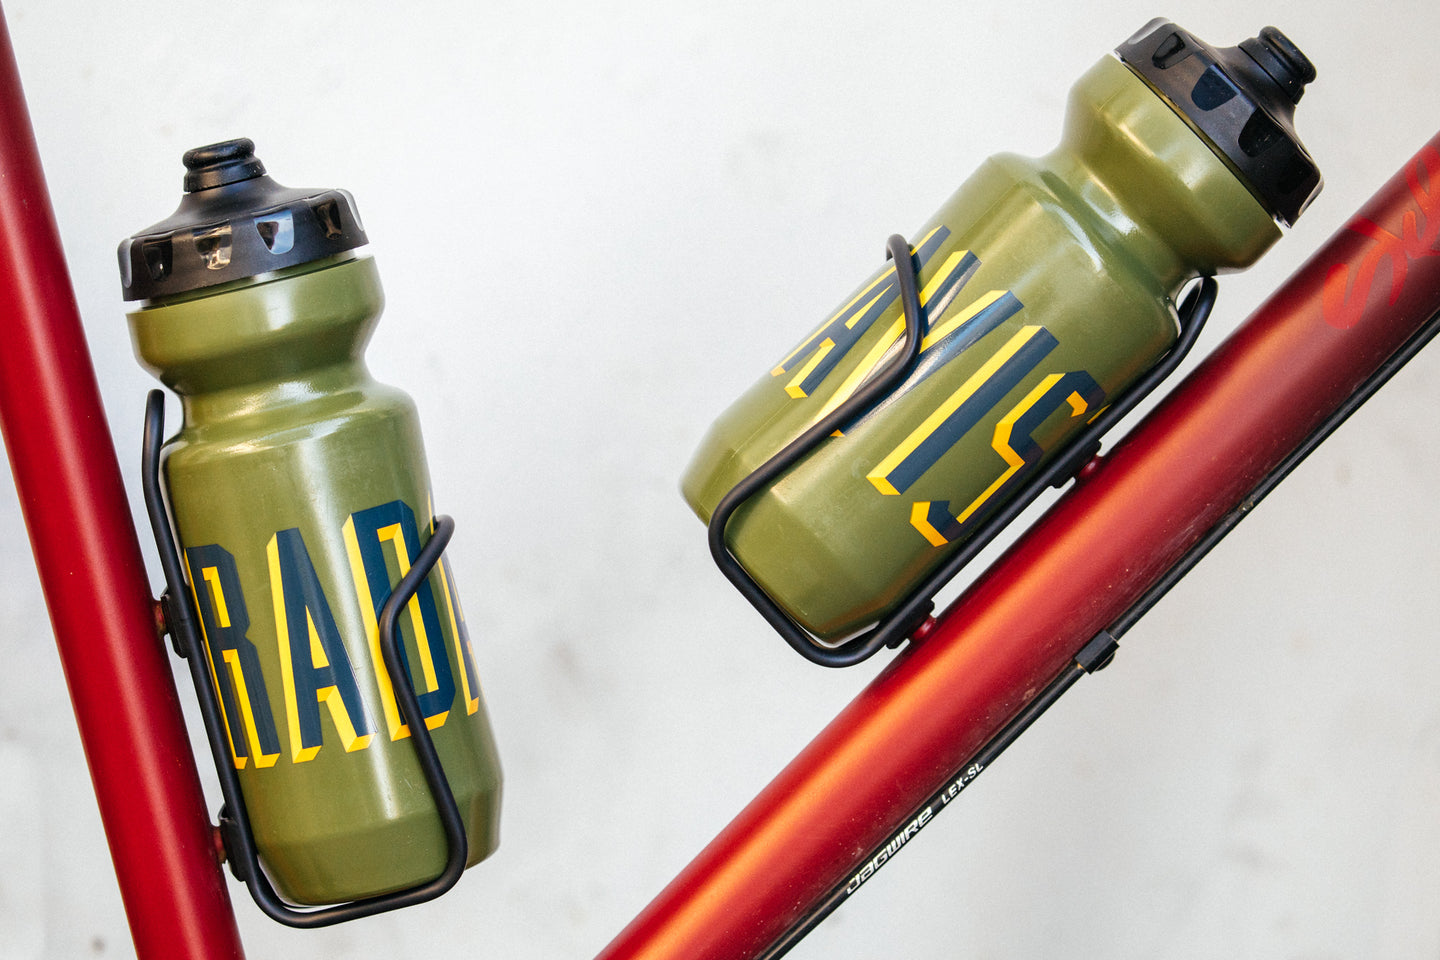 Sign Painter's Bottles by Cari Carmean